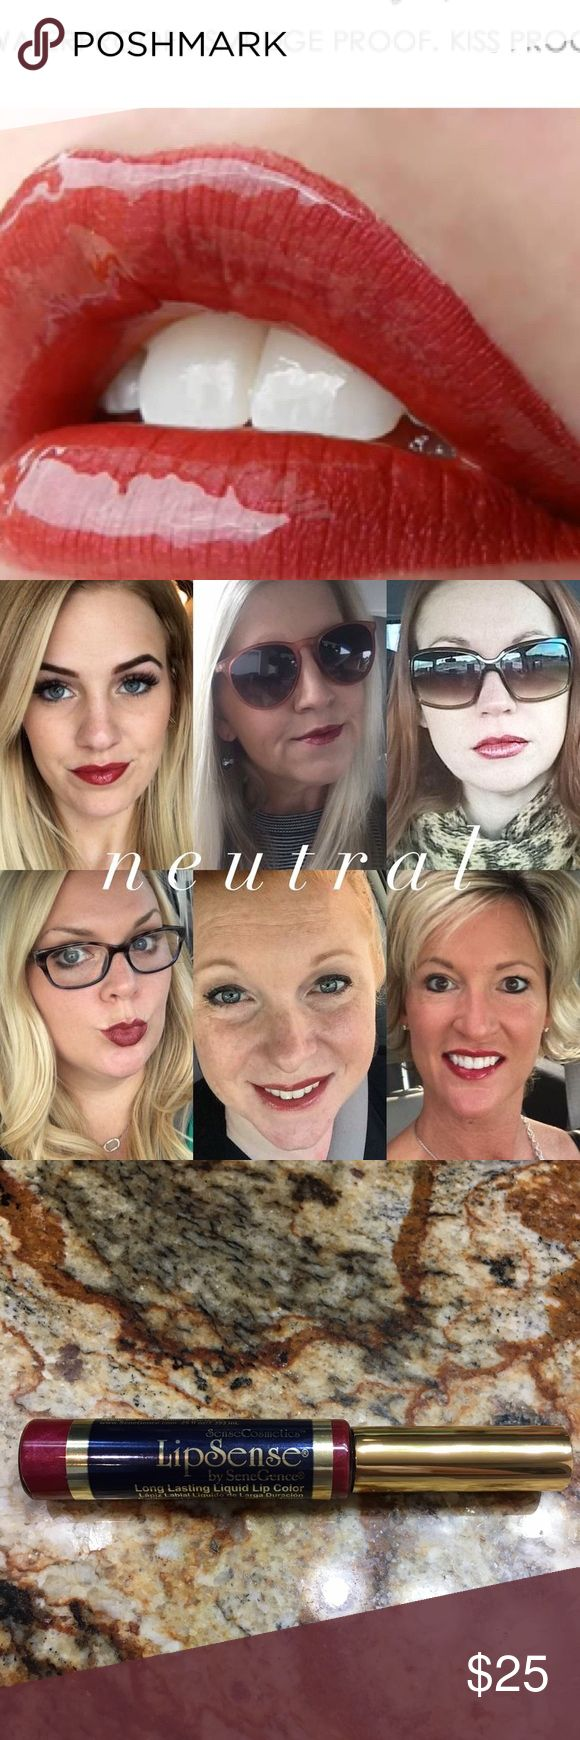 Lipsense NEUTRAL 18 Hour 👄 Lipstick In Stock!!! Brand new, sealed!  Neutral is a perfect berry Red that works with all skin tones The premier product of Senegence, LipSense lasts all day – up to 18 hours. It is water-proof, kiss-proof, smudge-proof, and completely budge-proof. LipSense comes in a variety of captivating colors and can be layered to produce your own custom look.  Must be worn with a Lipsense gloss. Brand new, sealed!  COMMENT BELOW WITH YOUR EMAIL TO GET DISCOUNT INFORMATION…